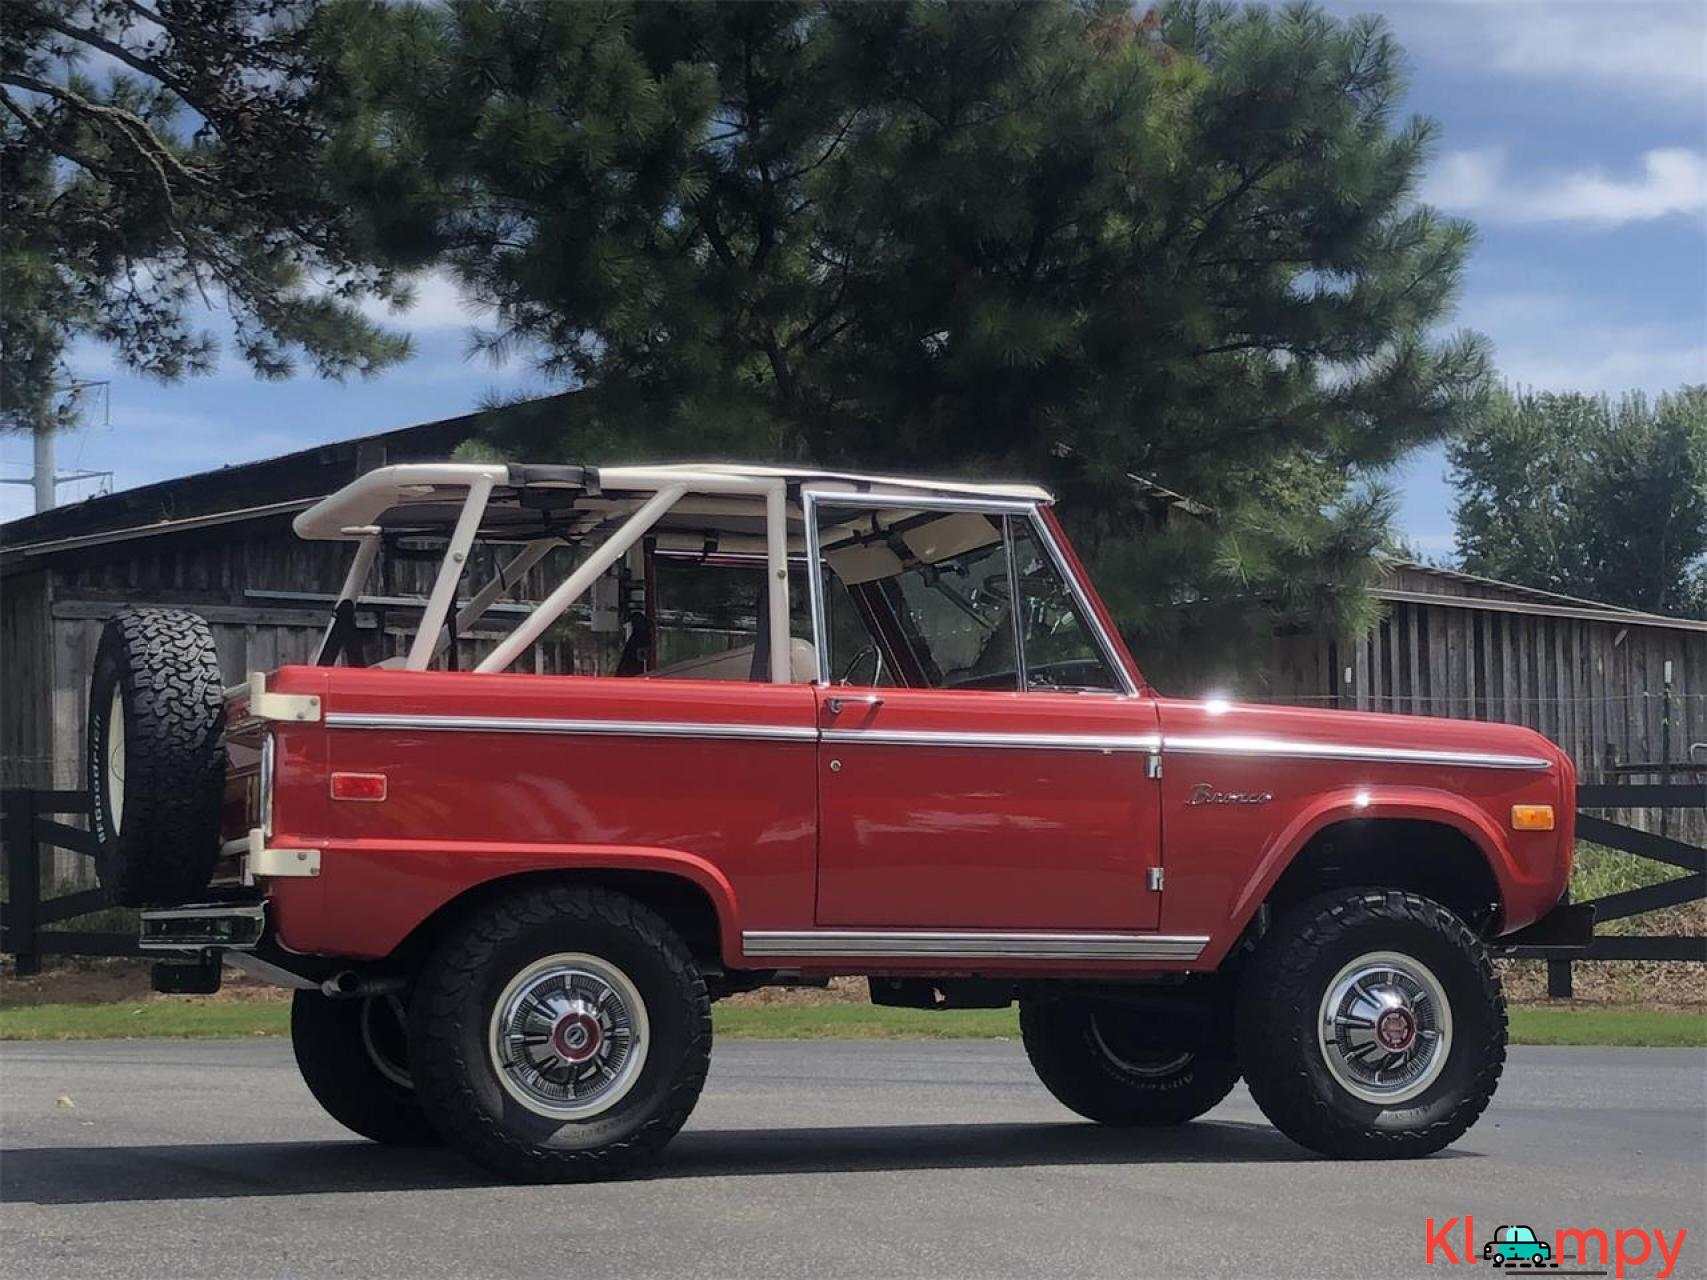 1974 Ford Bronco STRONG 302 - 3/20